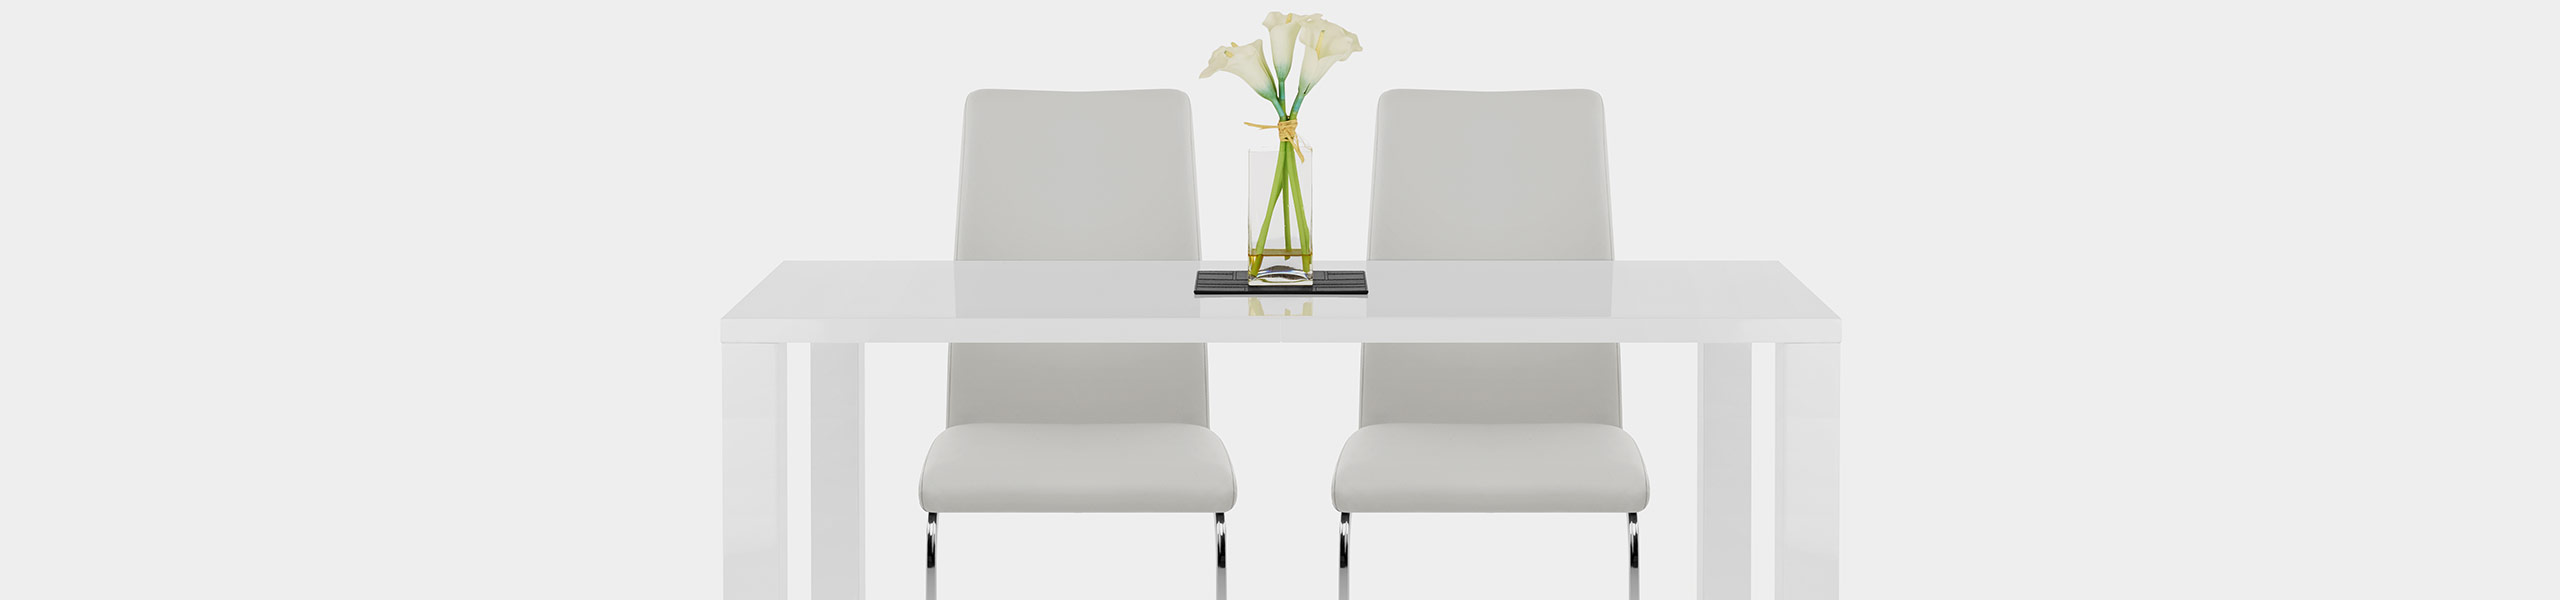 Jordan Dining Chair Light Grey Video Banner